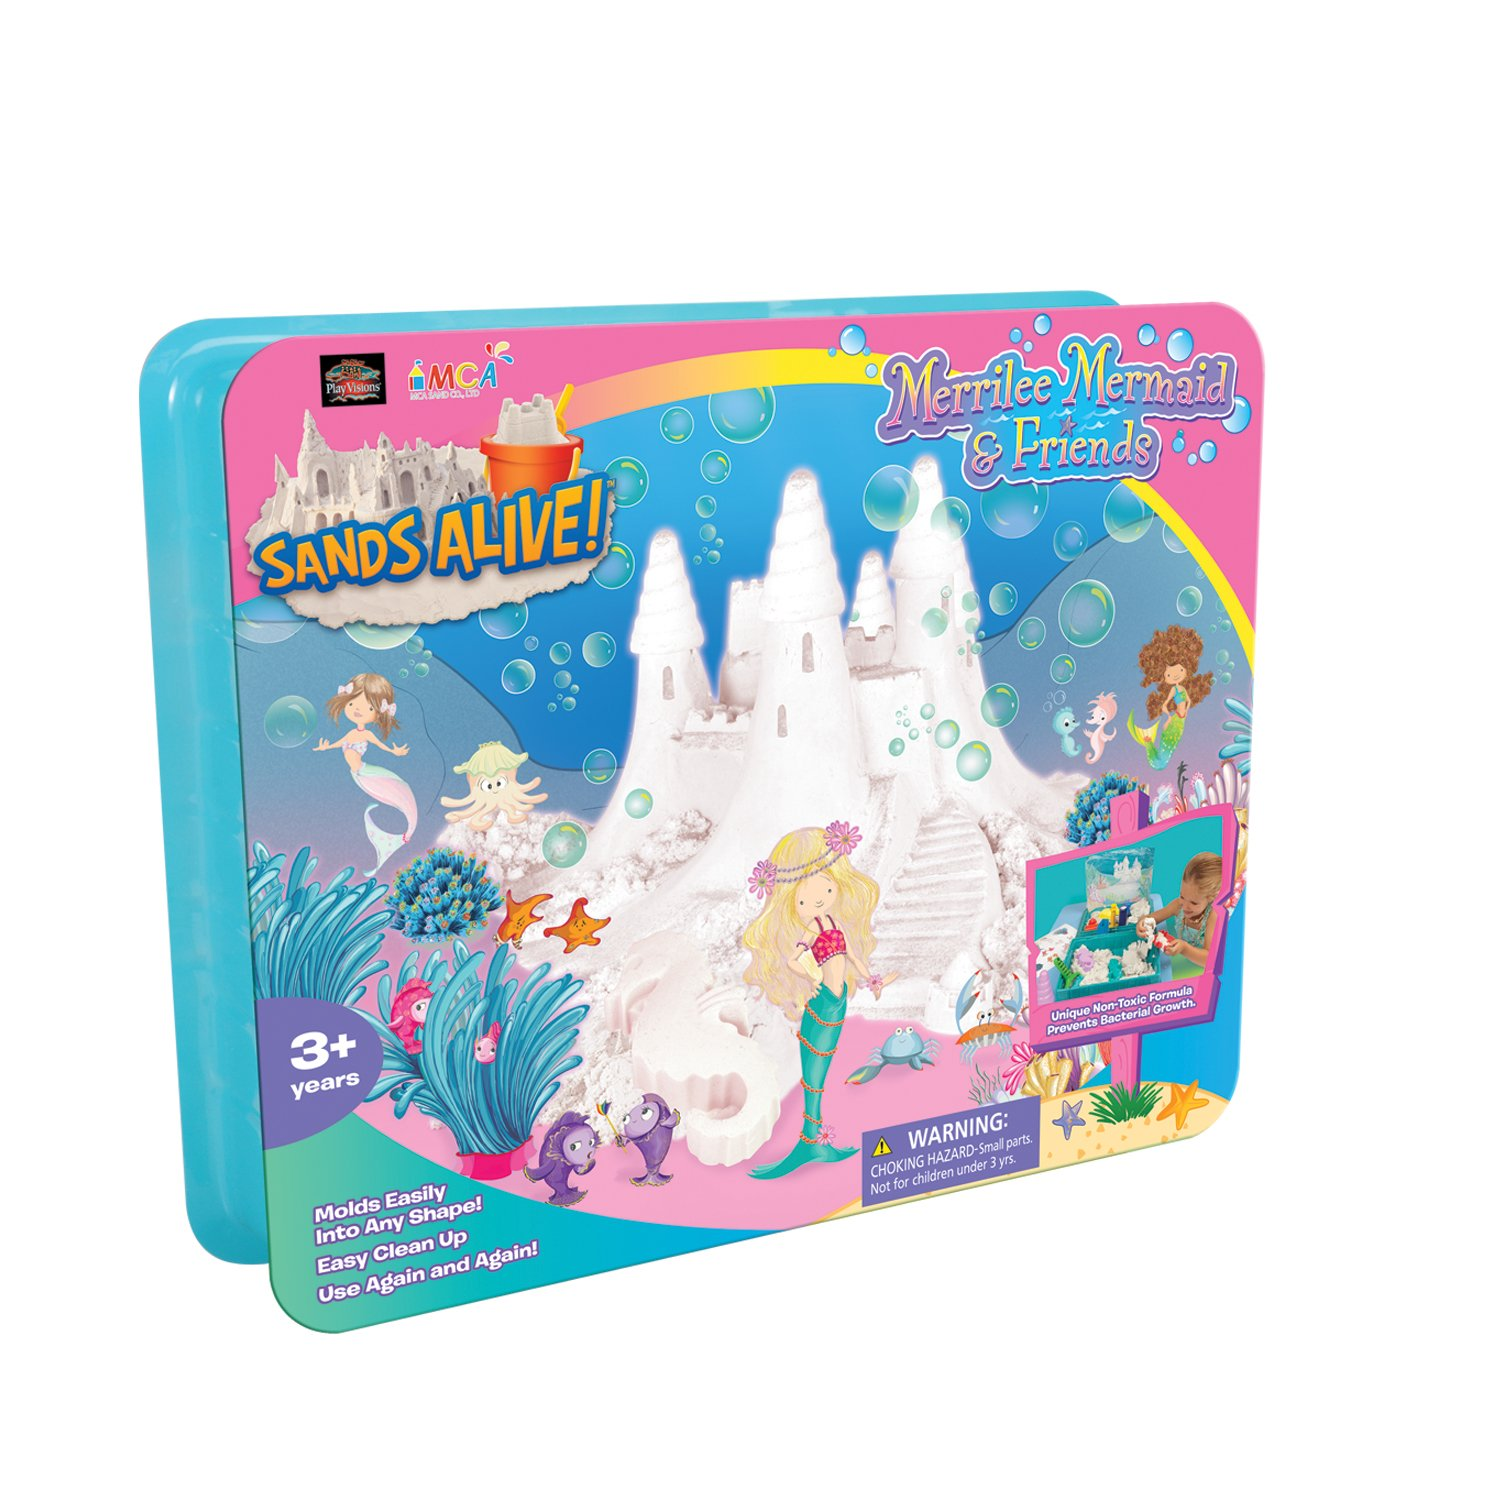 Play Visions Sands Alive! Merrilee Mermaid and Friends by Play Visions